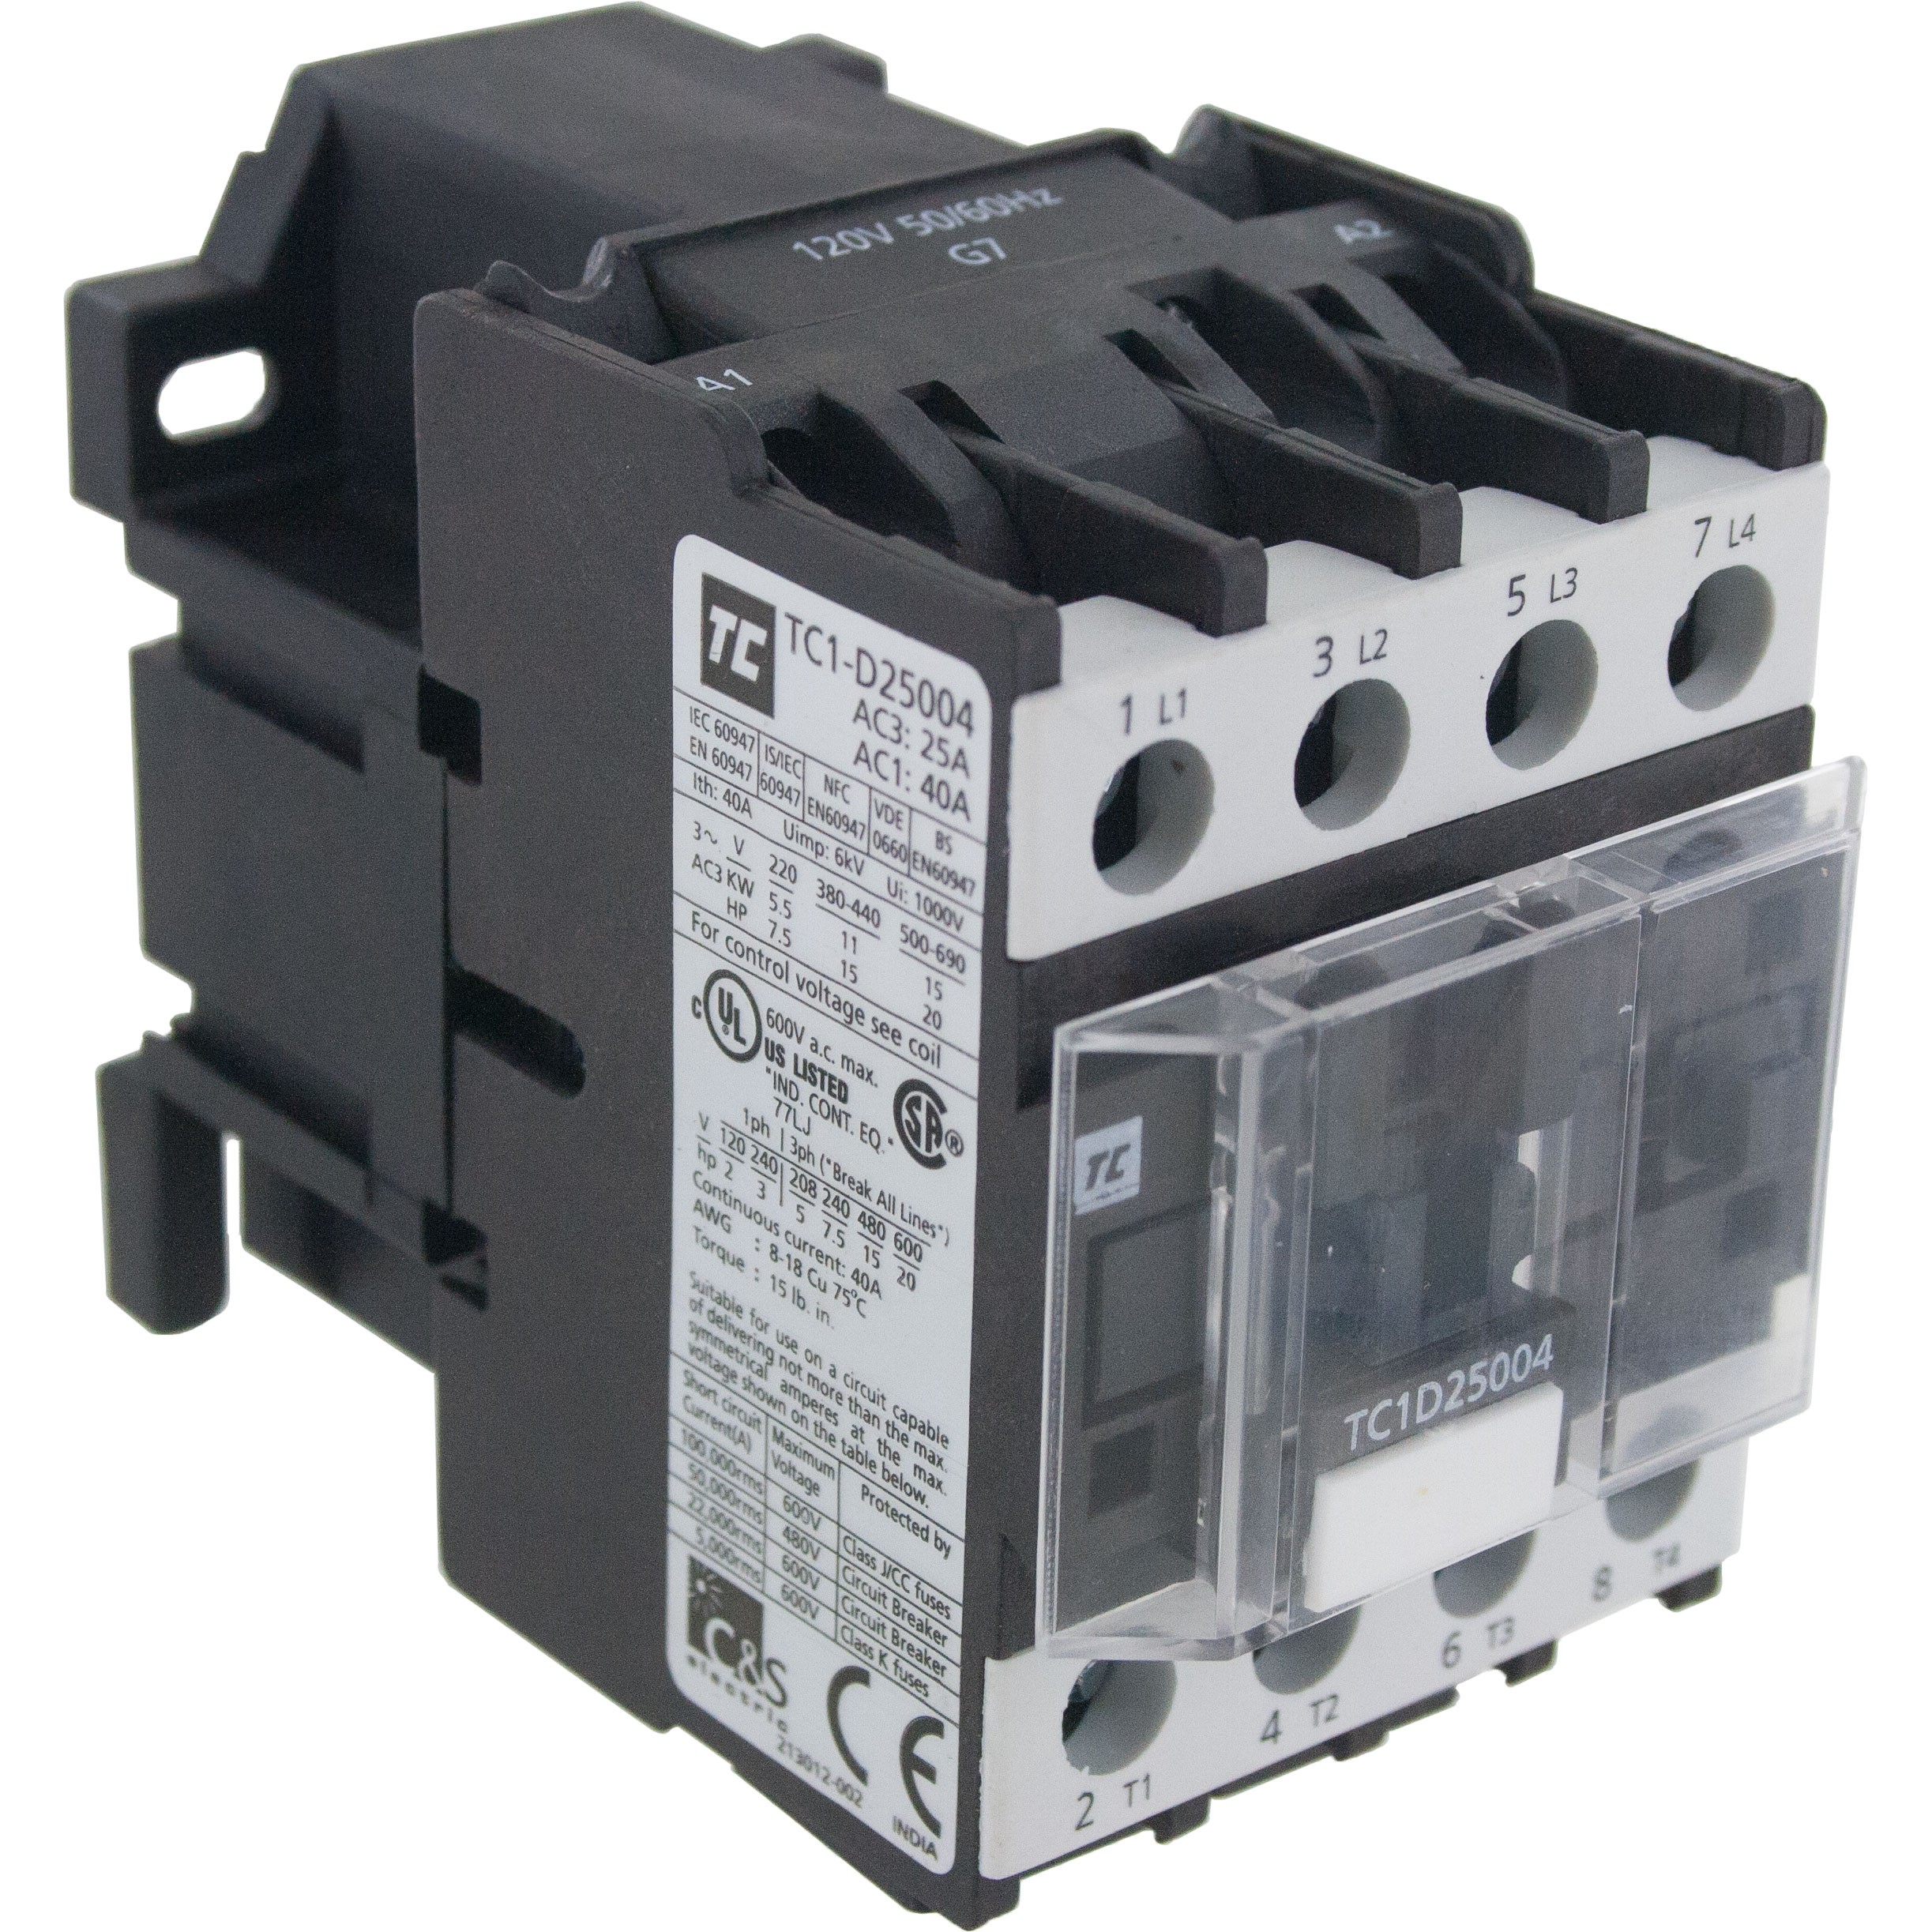 Magnificent 4 Pole Contactor Wiring Diagram Ideas - Electrical and ...